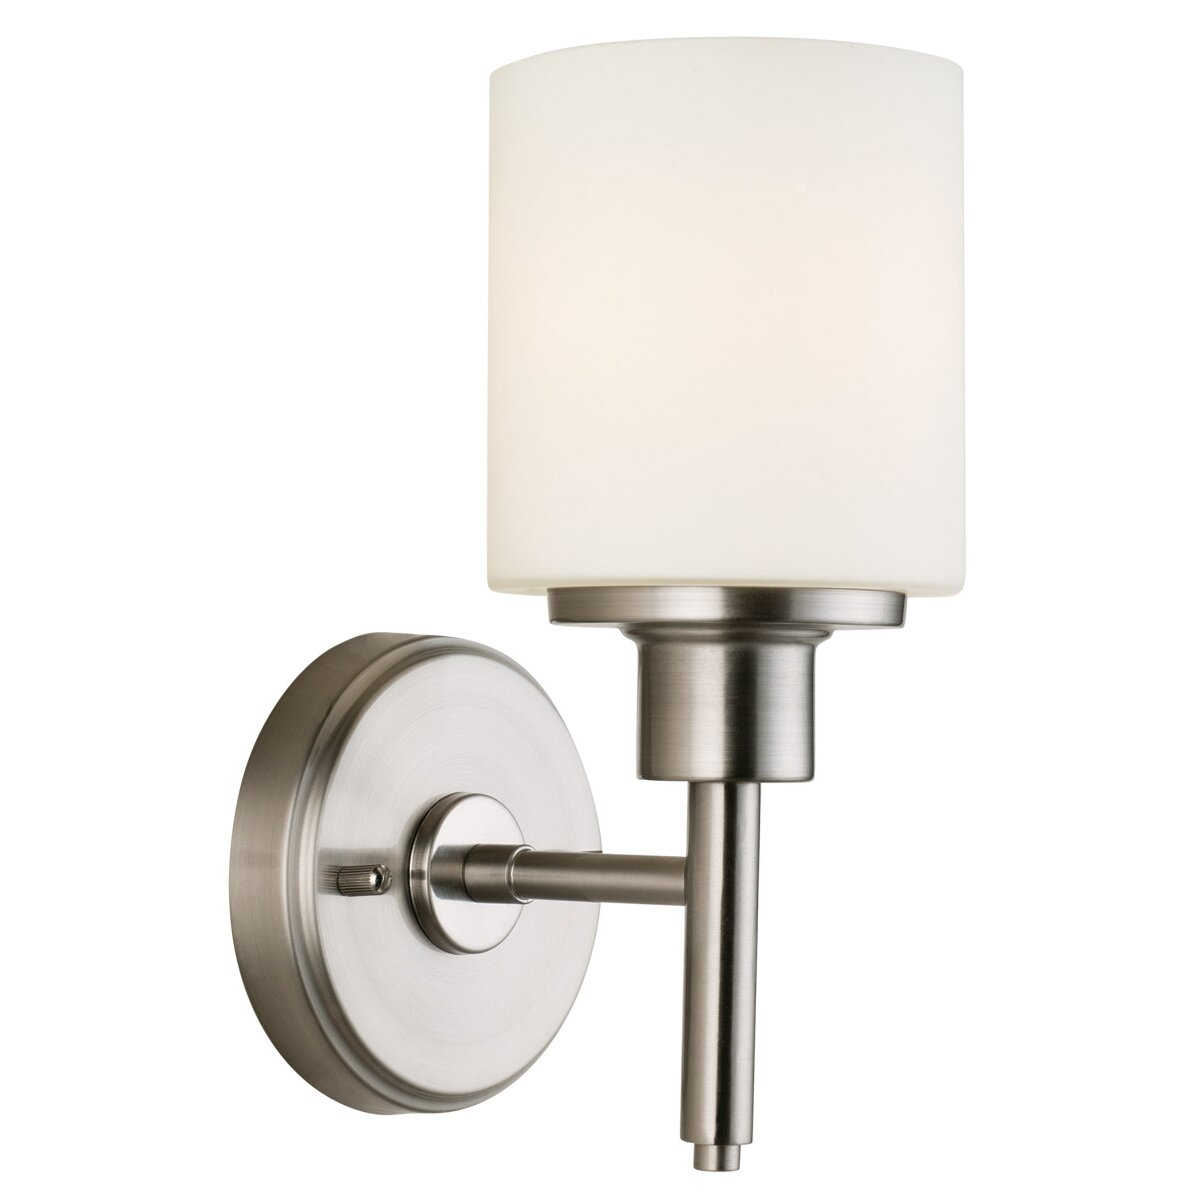 Wayfair Indoor Wall Sconces : Design House Aubrey 1 Light Wall Light & Reviews Wayfair